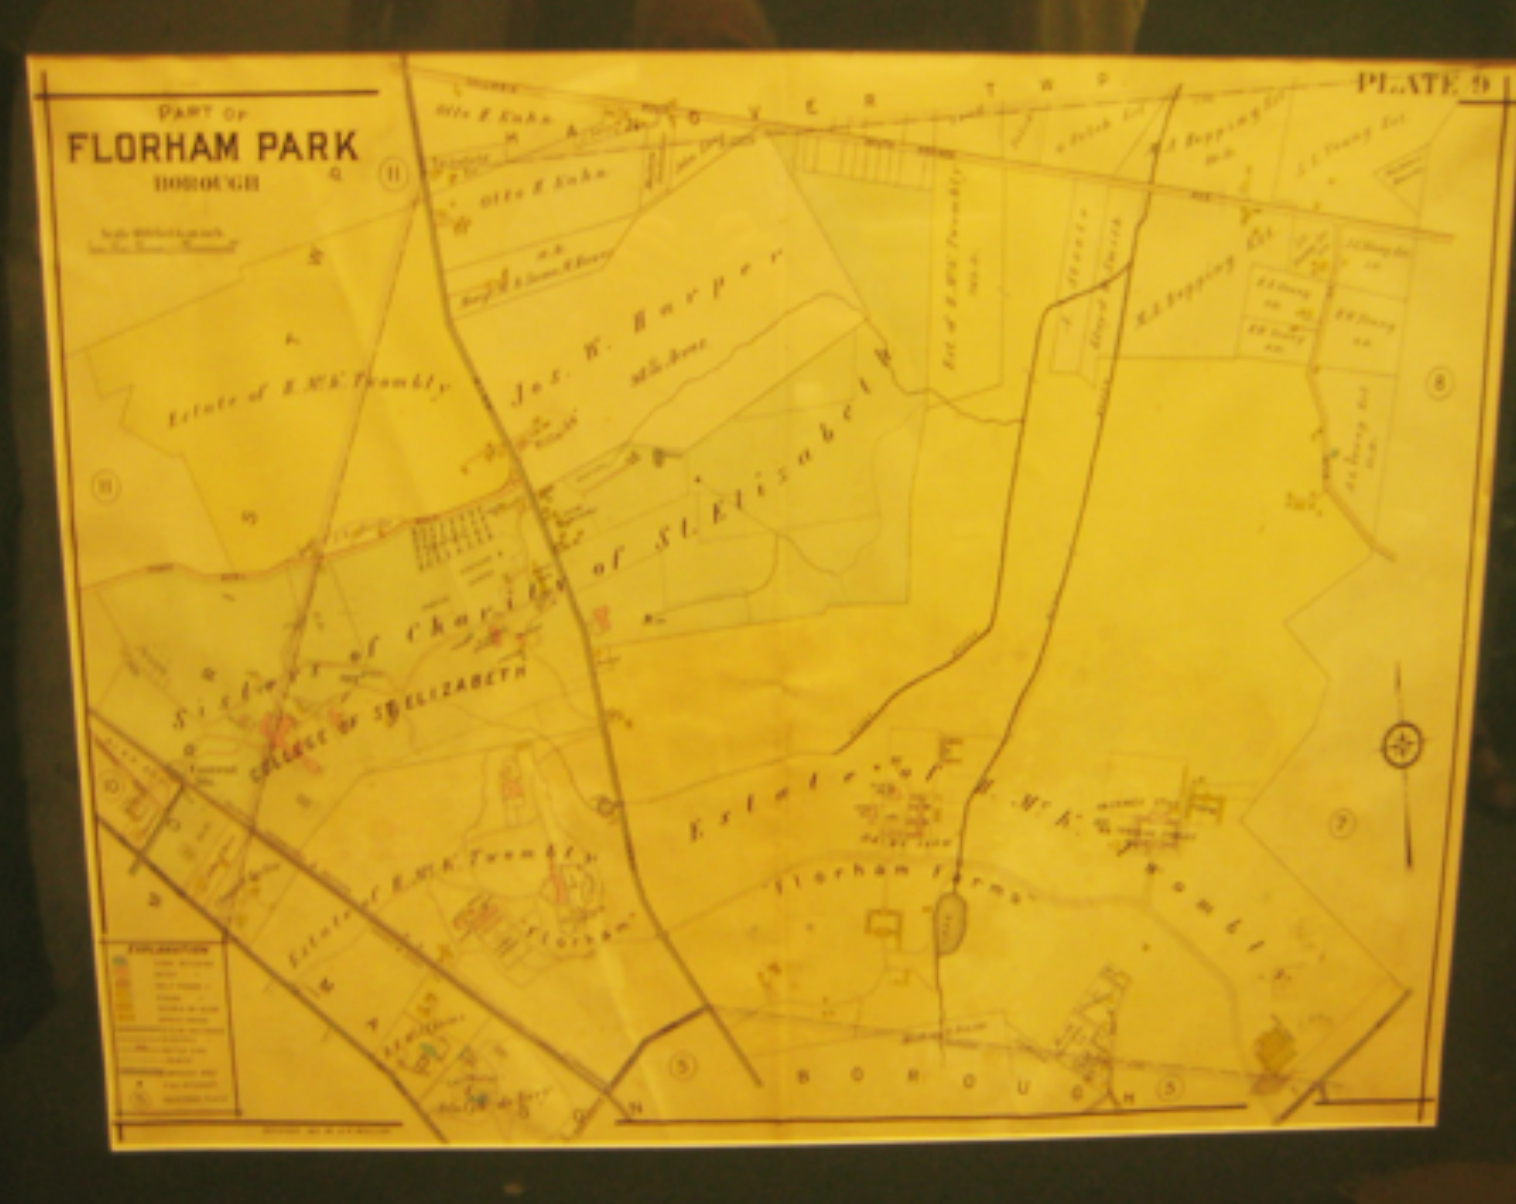 Florham on a 1910 map of Florham Park NJ